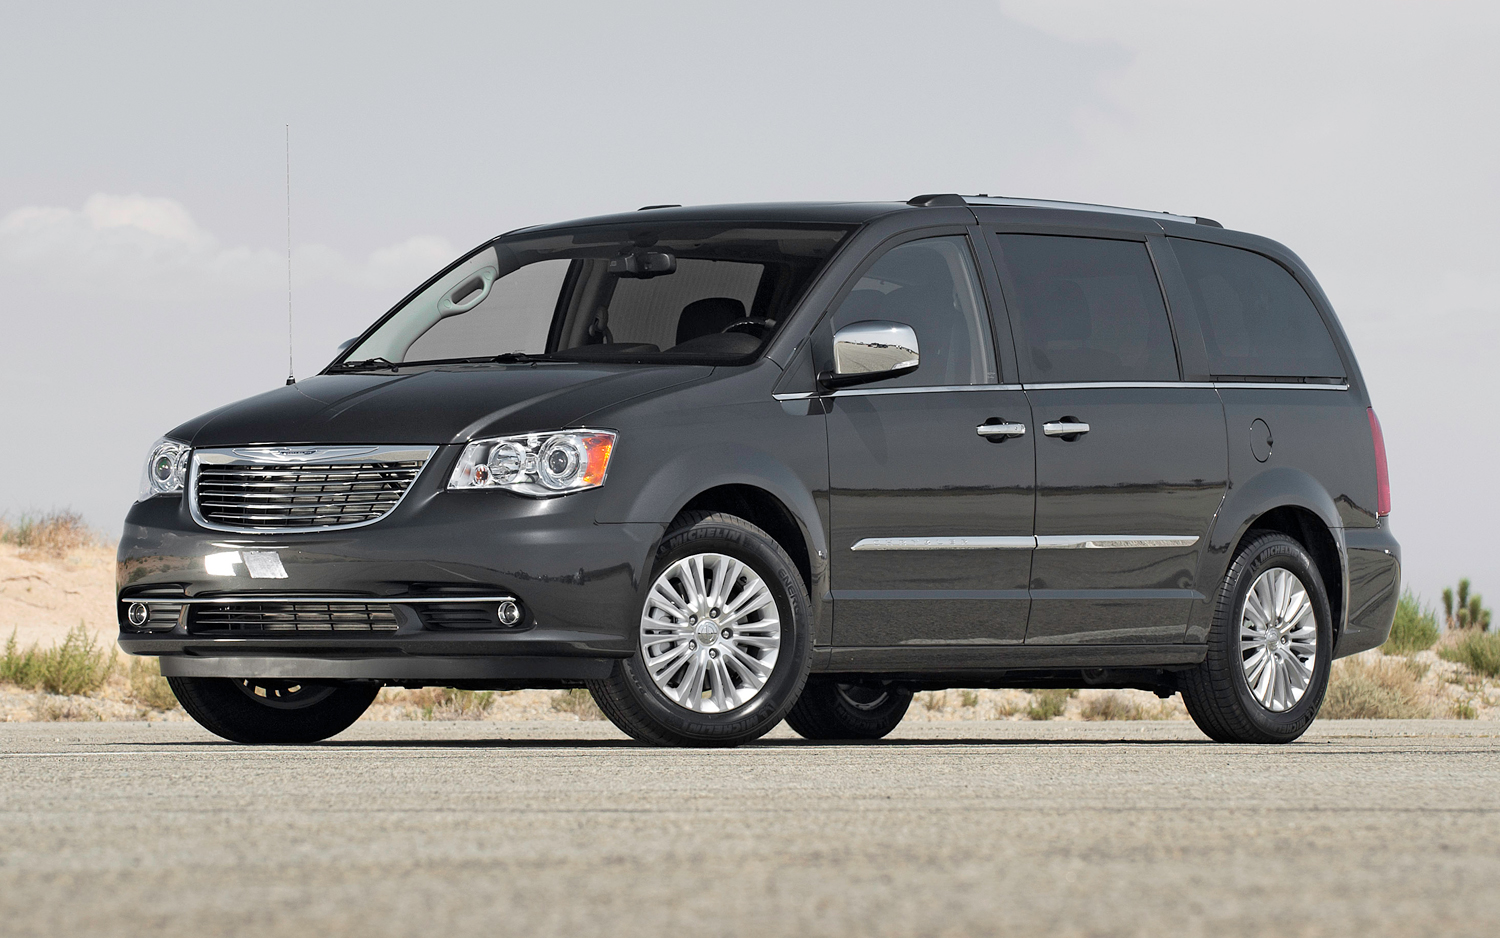 2012 chrysler town and country image 10. Black Bedroom Furniture Sets. Home Design Ideas